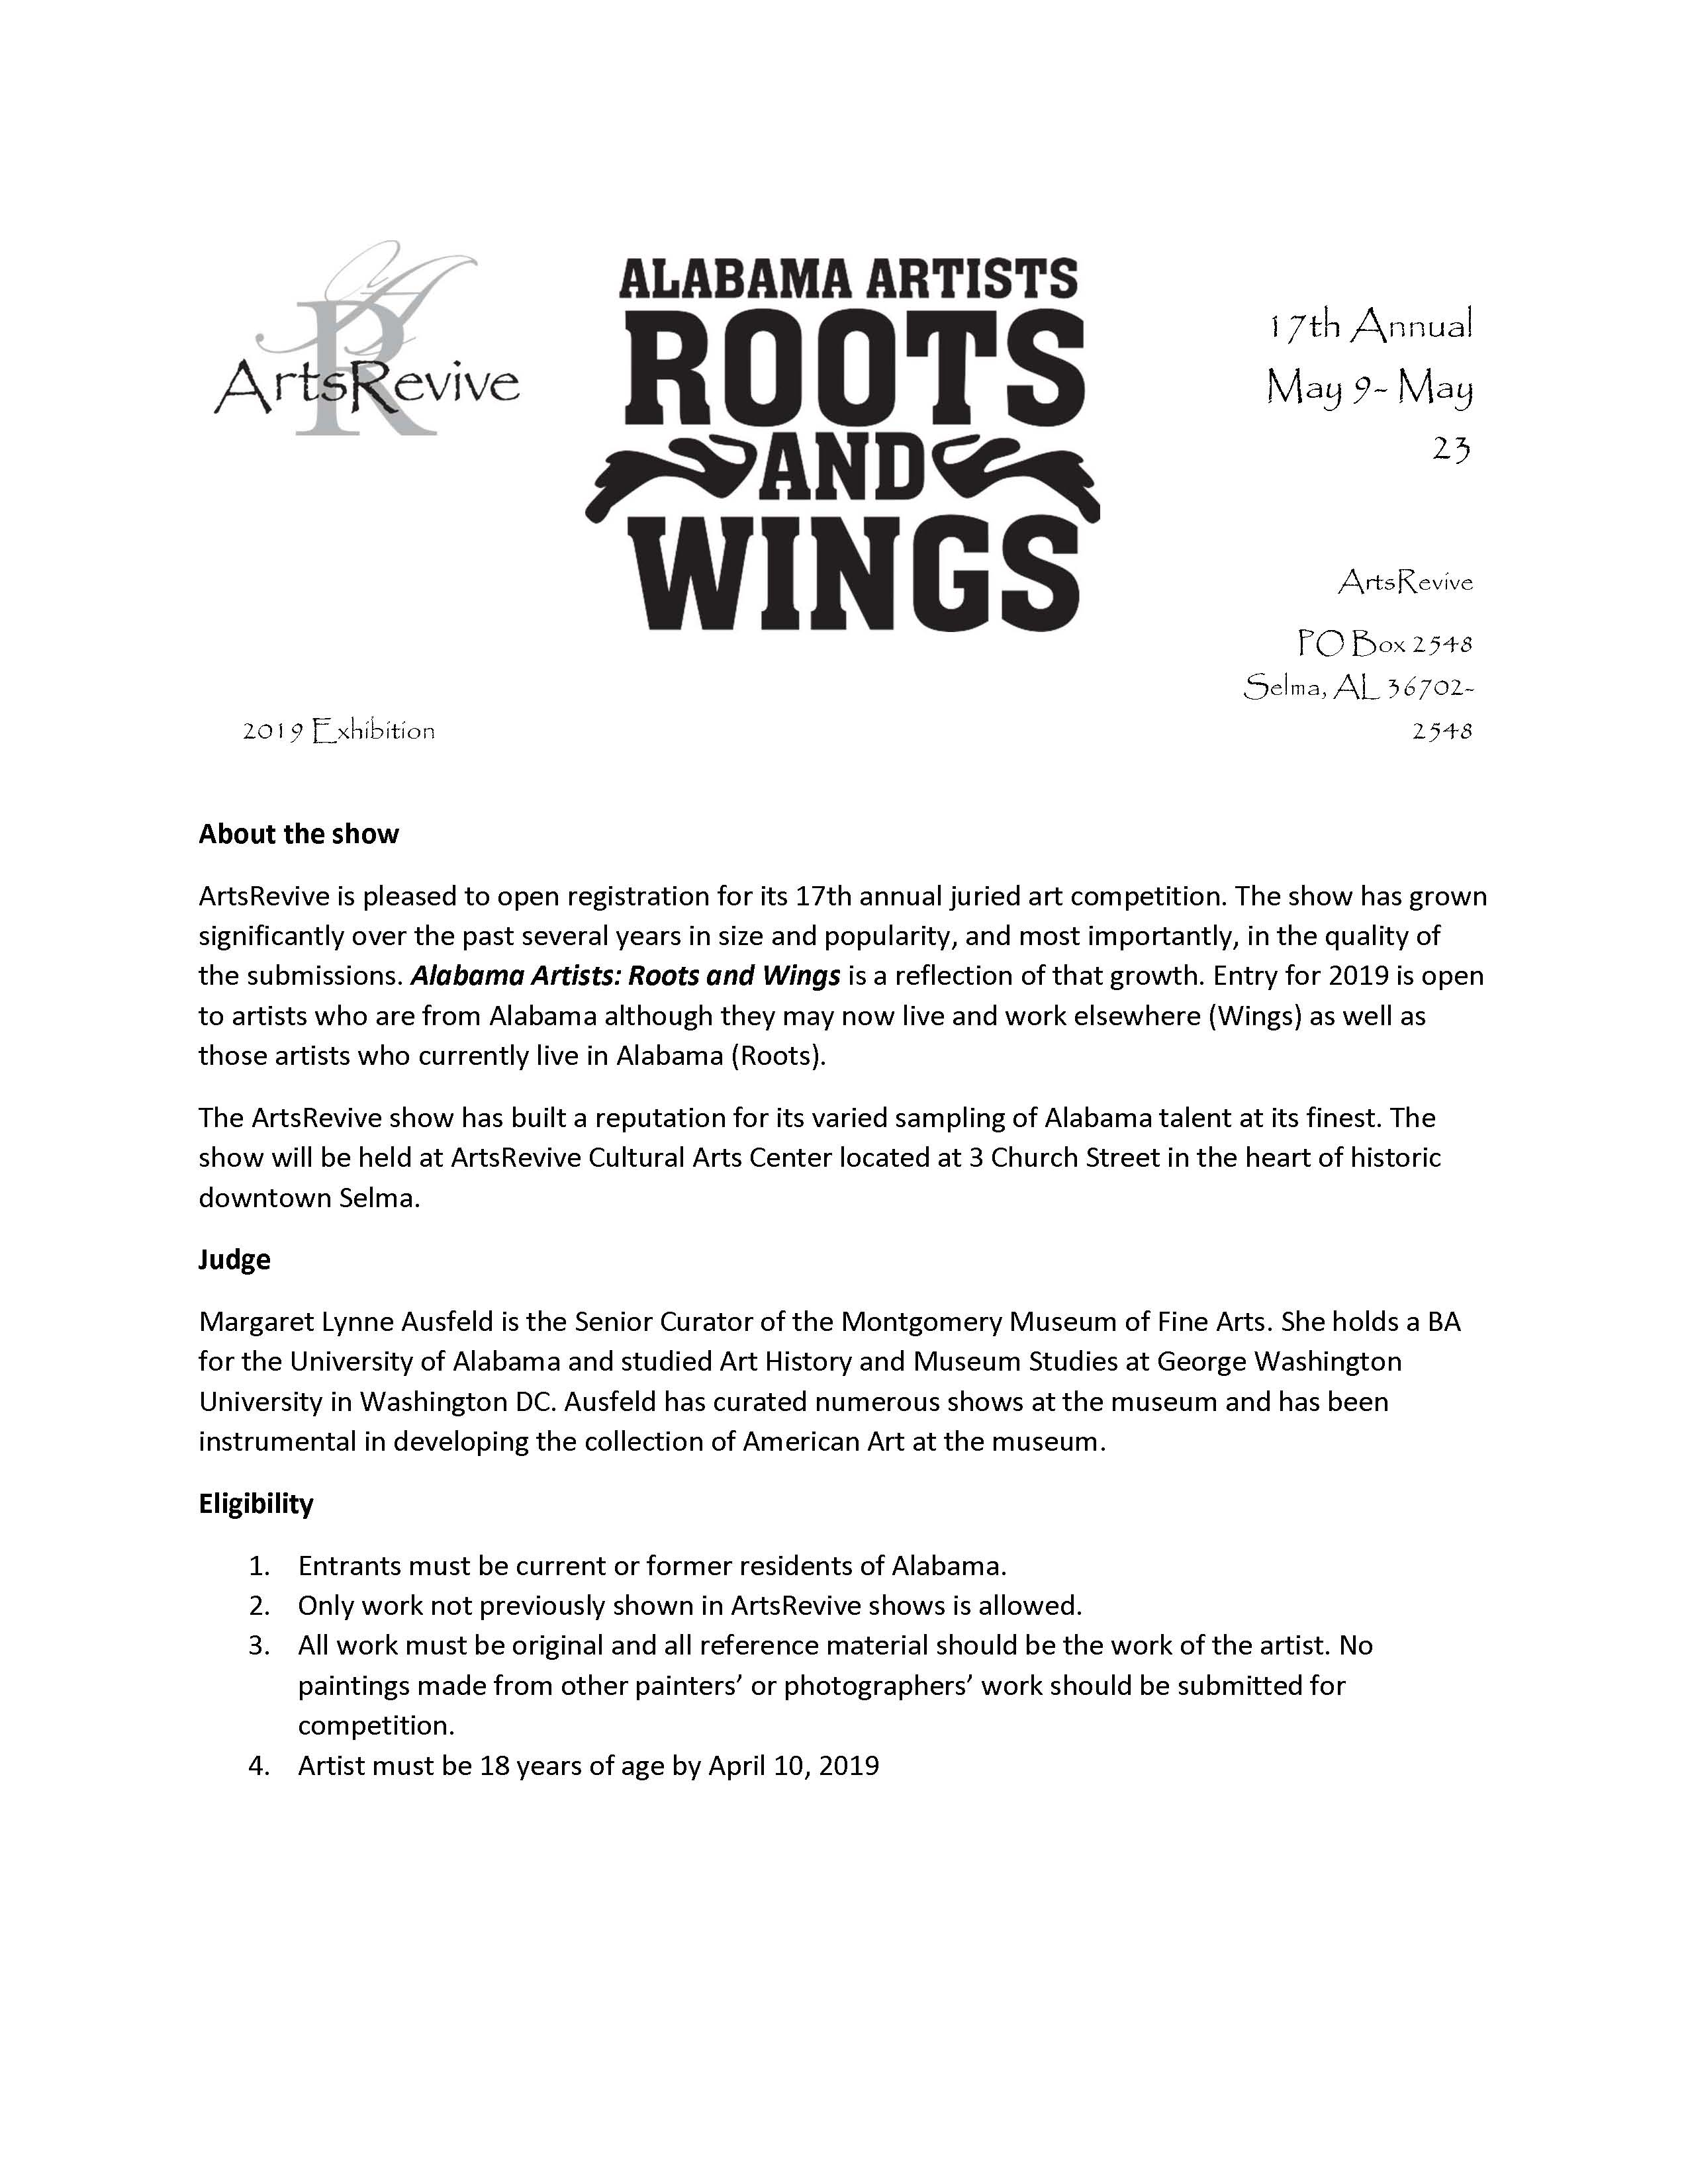 Roots and Wings Application Page 4